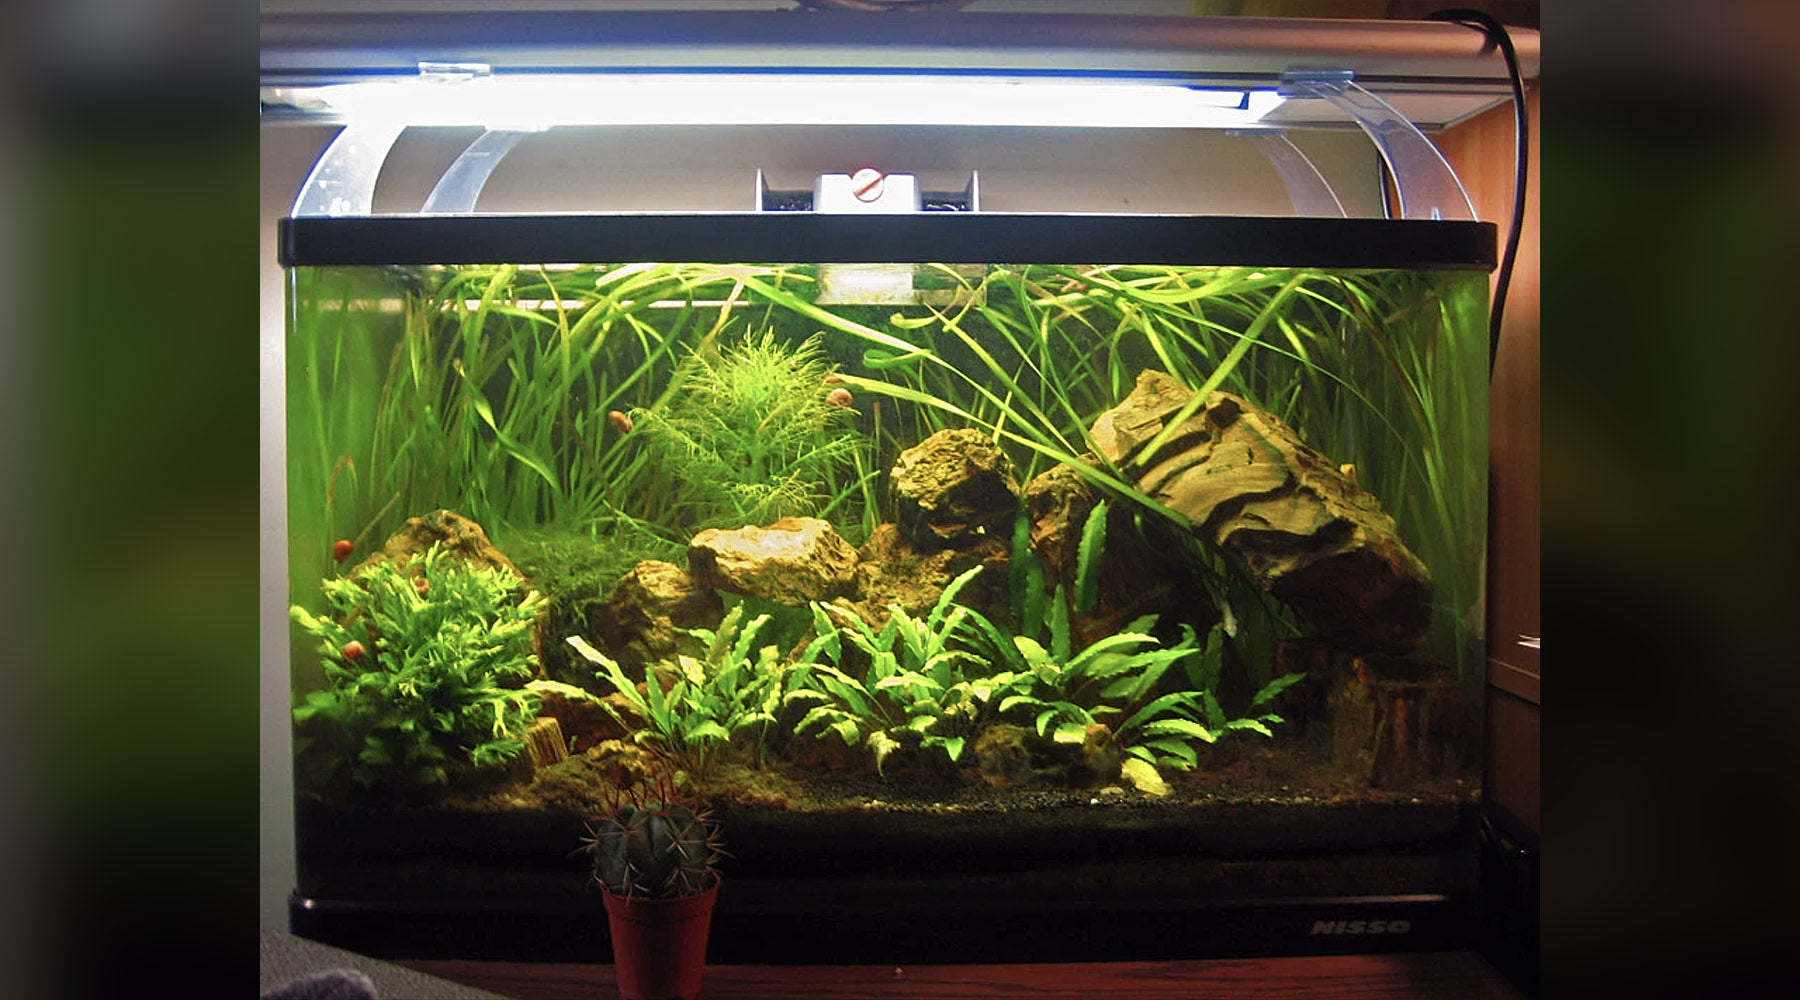 'No ferts, no dosing, no CO2' planted tanks, how valid are they?